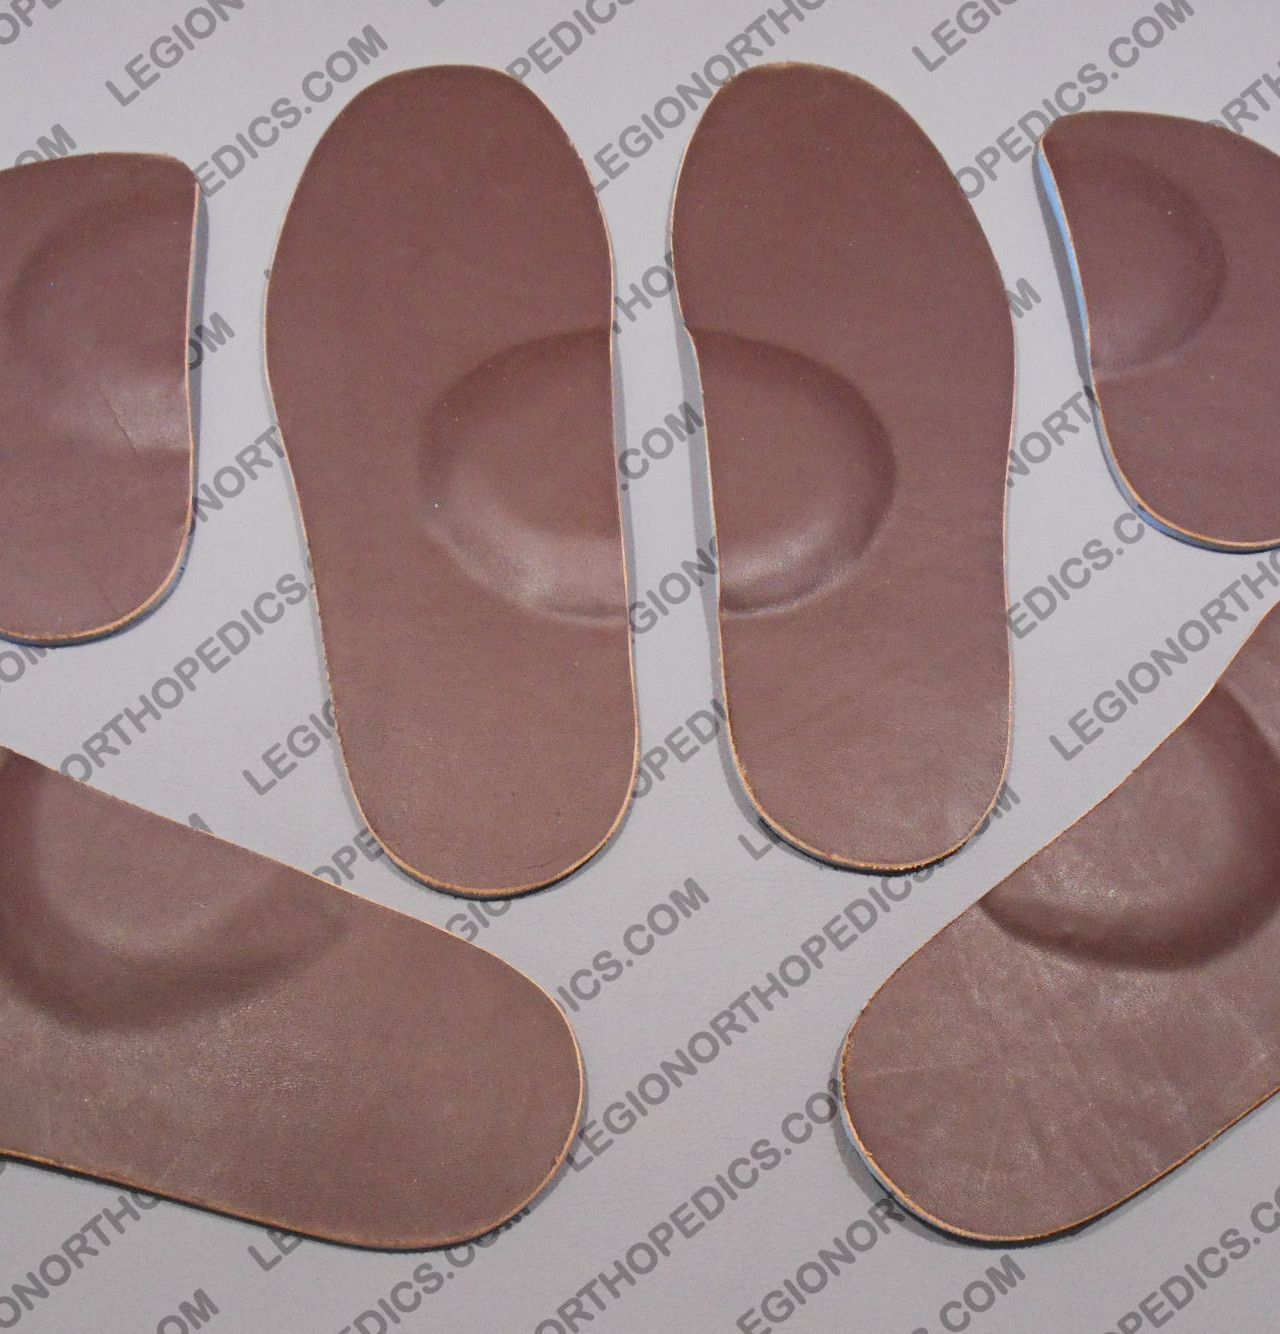 Leather insoles with arch